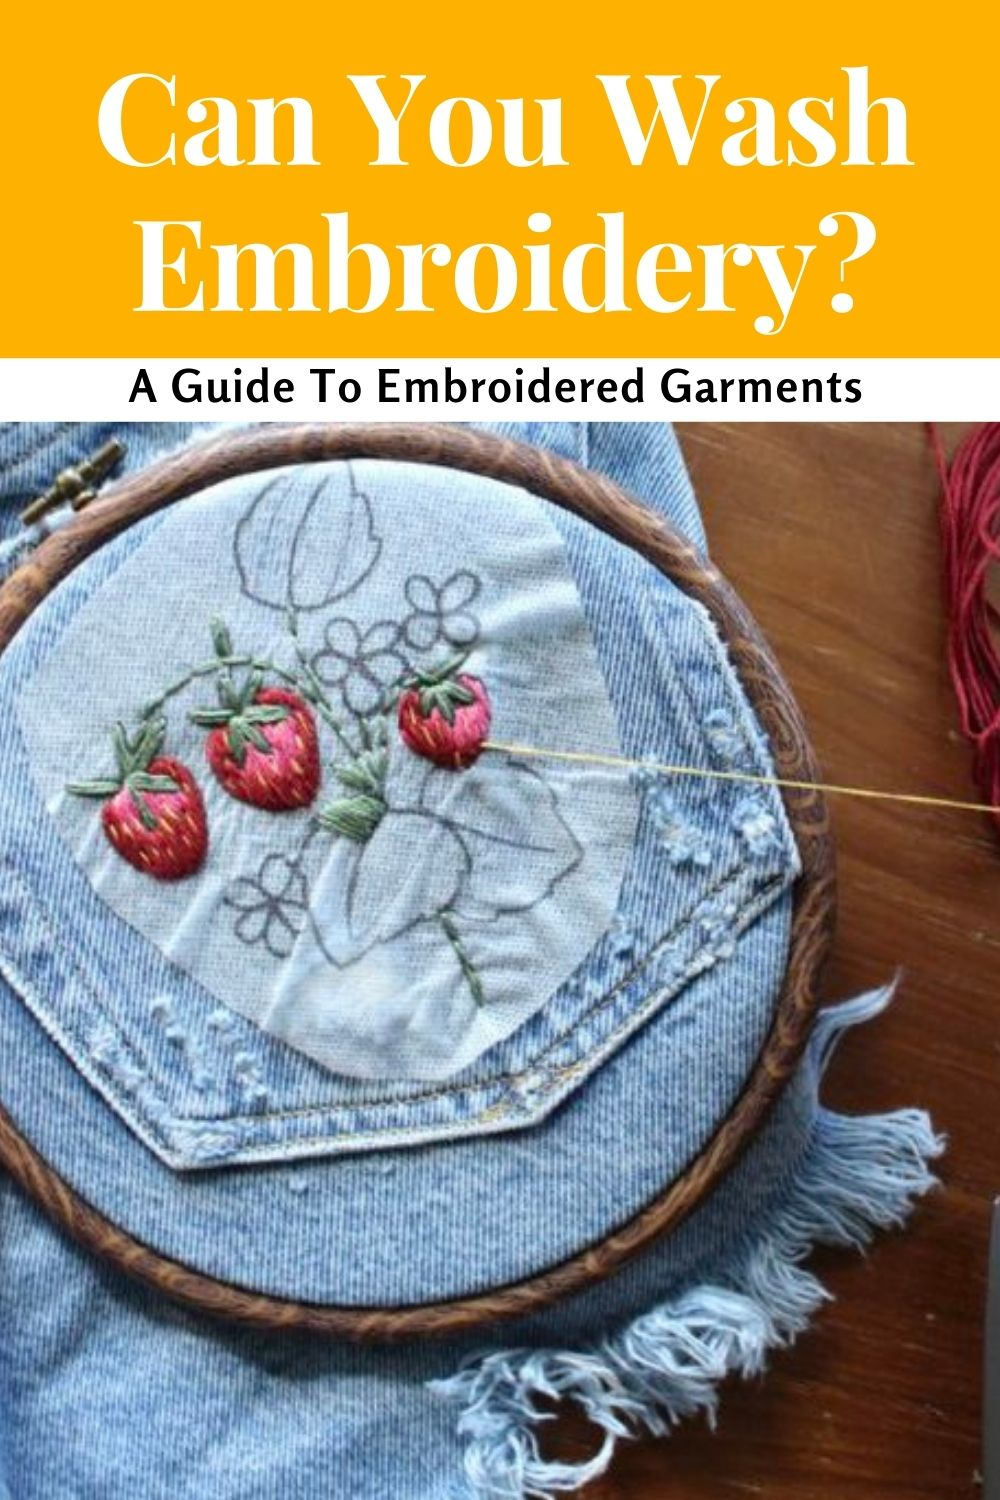 can you wash embroidered clothing? guide to embroidery garment care